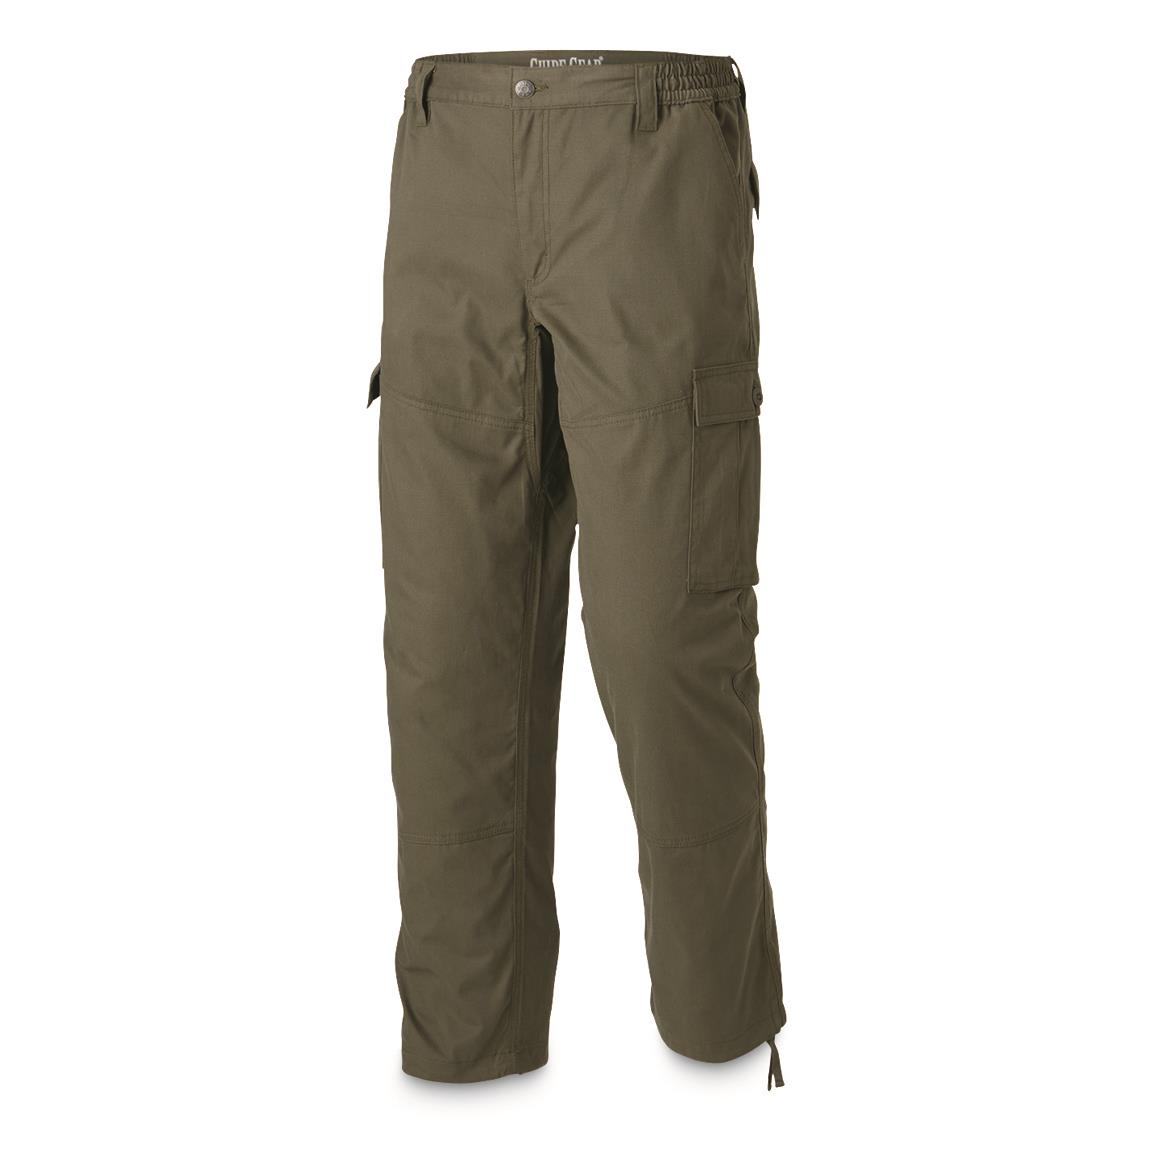 Guide Gear Men's 6-Pocket Duck Cargo Pants, Olive